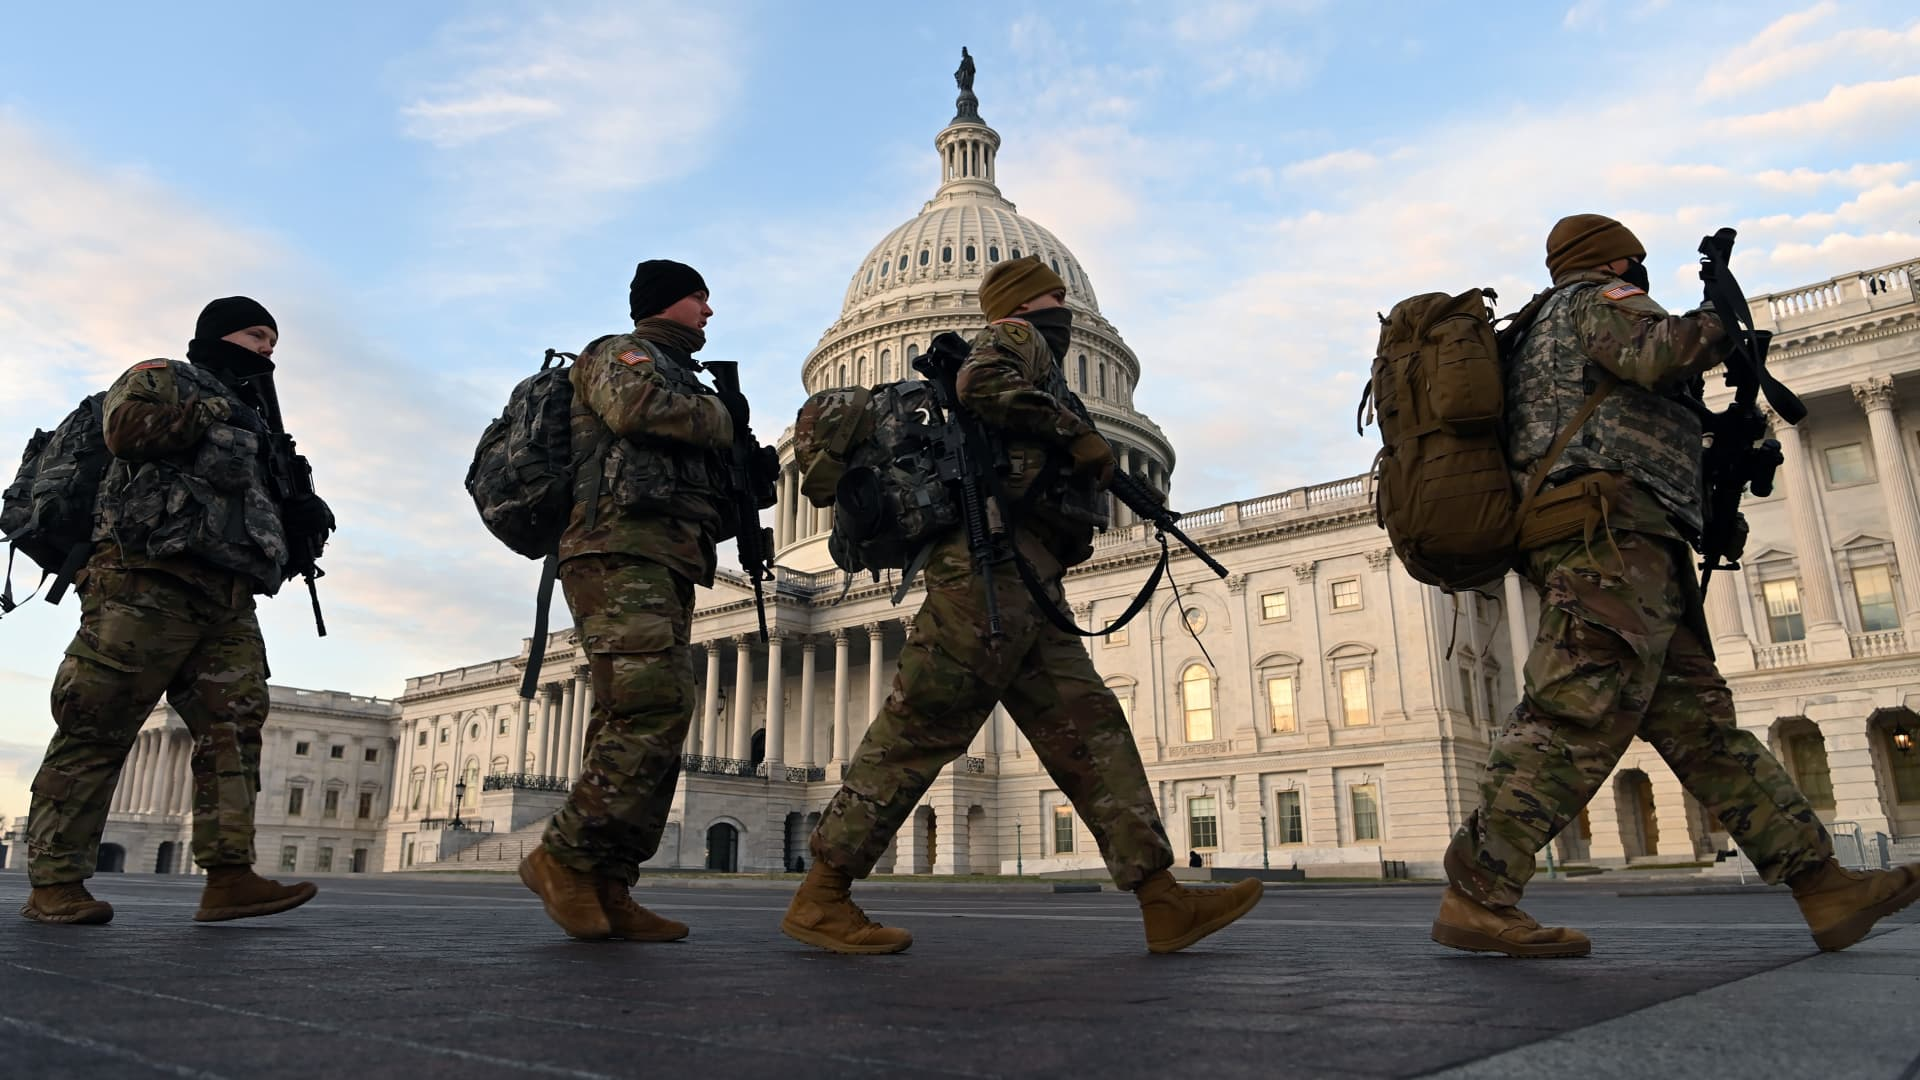 Members of the National Guard walk outside the United States Capitol on Thursday January 14, 2021 in Washington, DC.